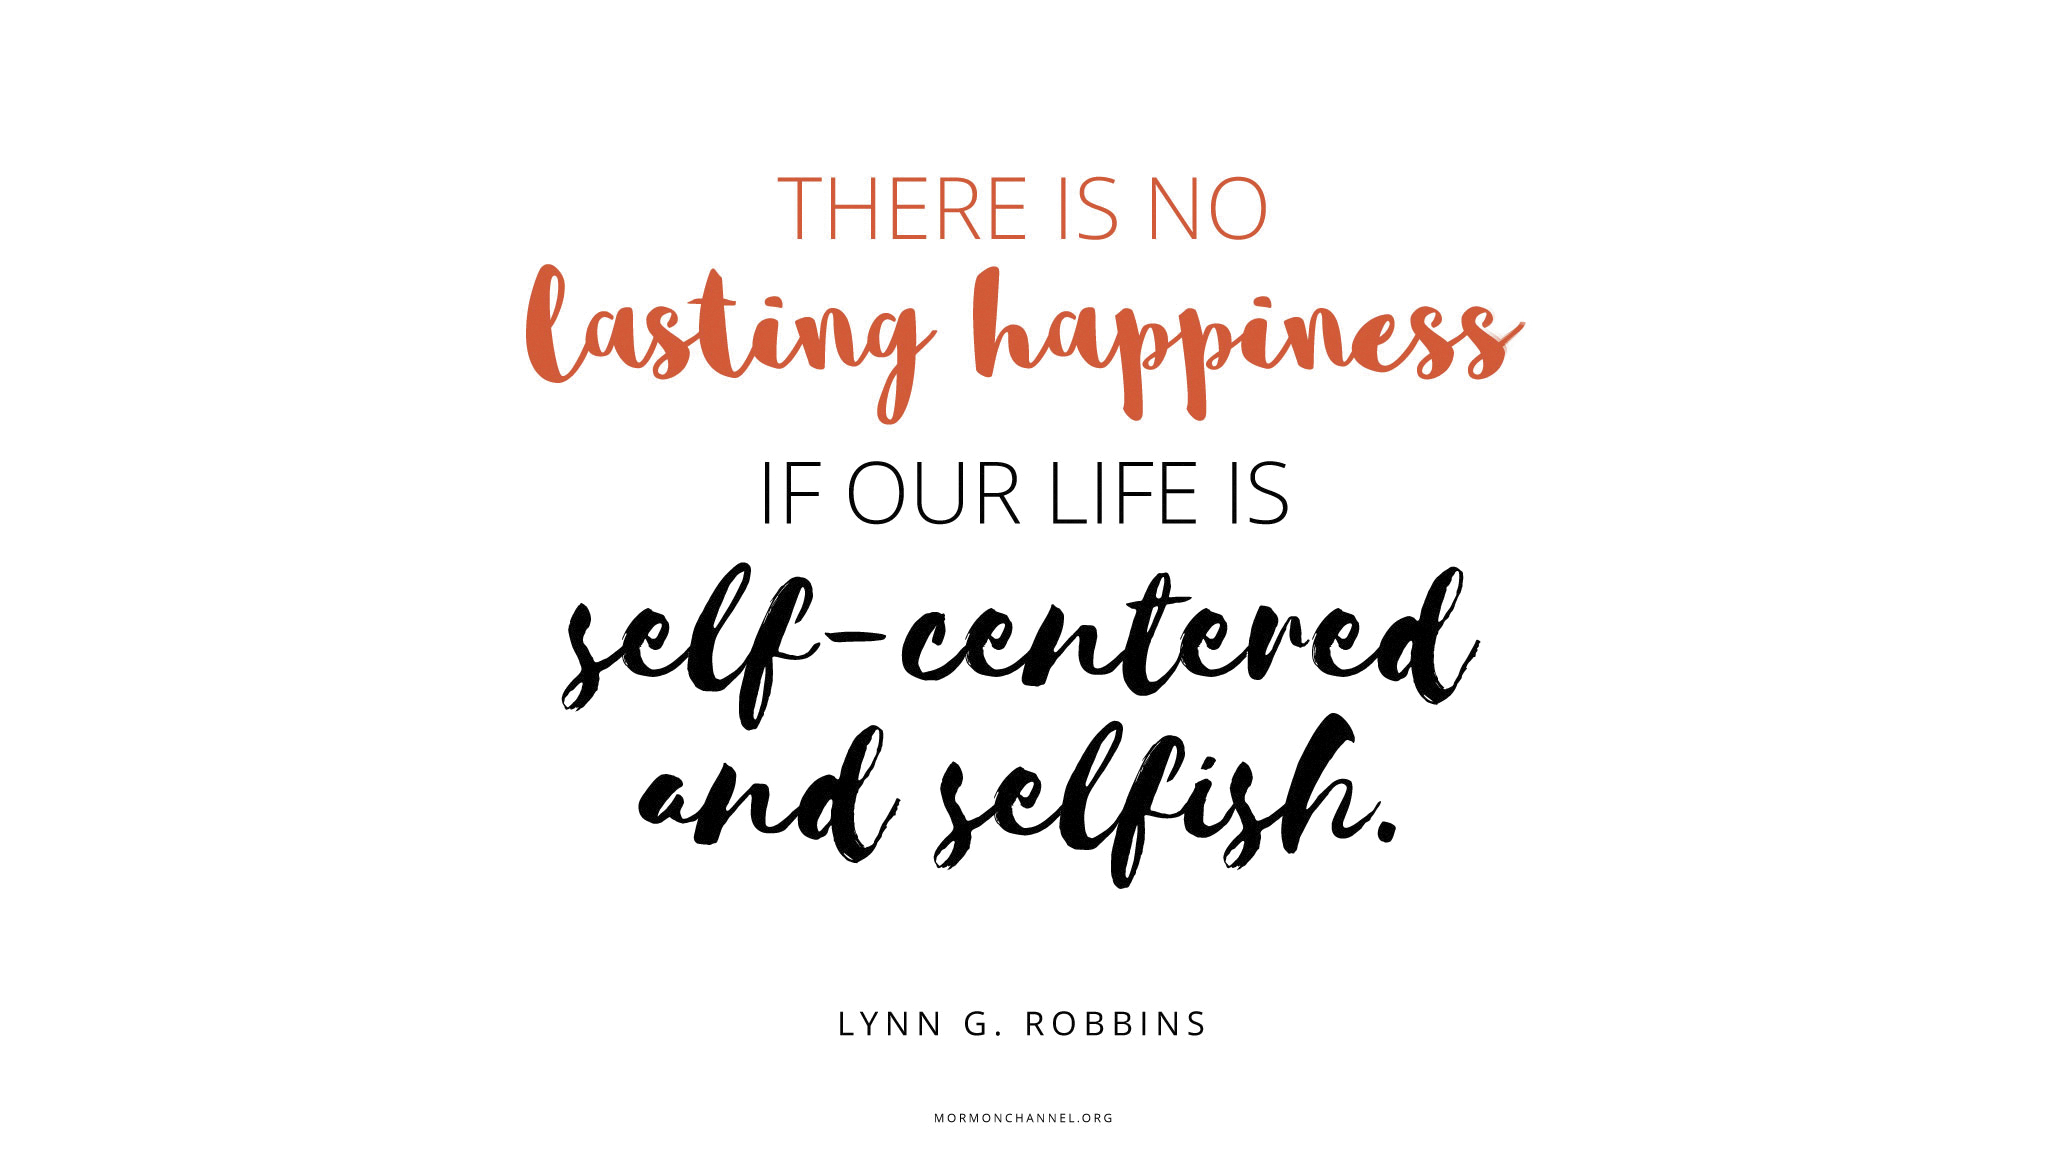 """""""There is no lasting happiness if our life is self-centered and selfish.""""—Elder Lynn G. Robbins © undefined ipCode 1."""